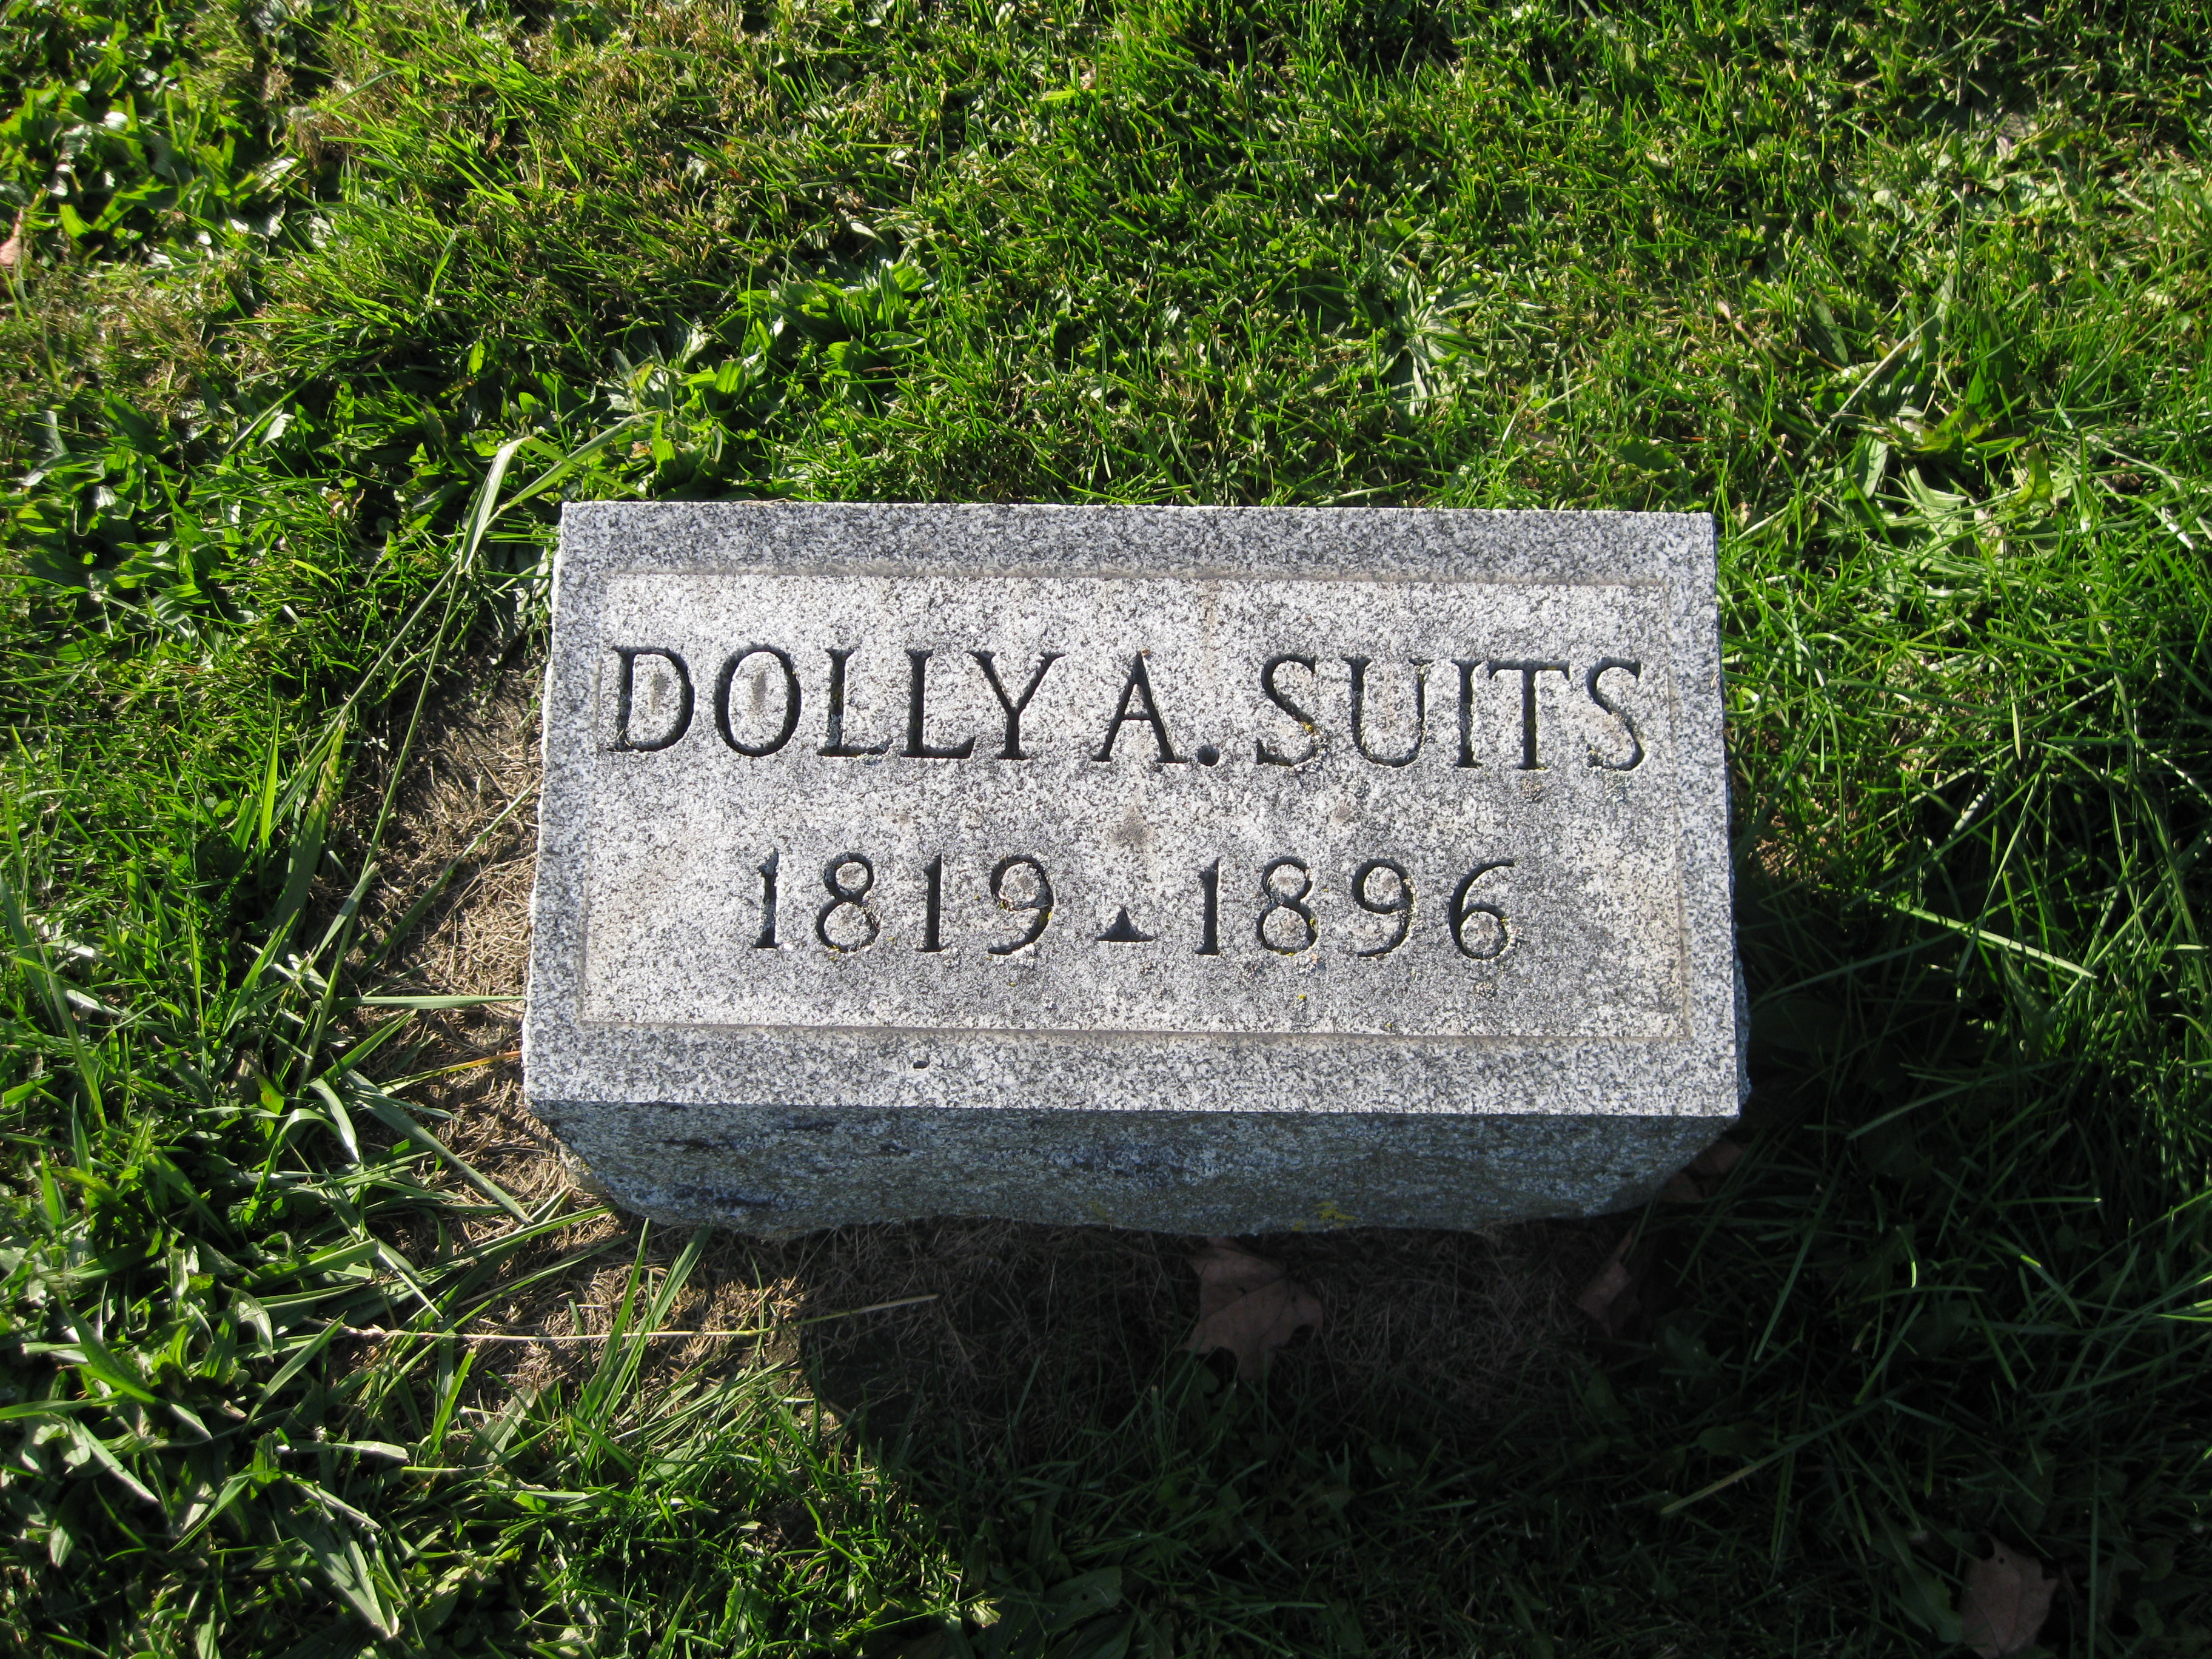 Dolly Suits